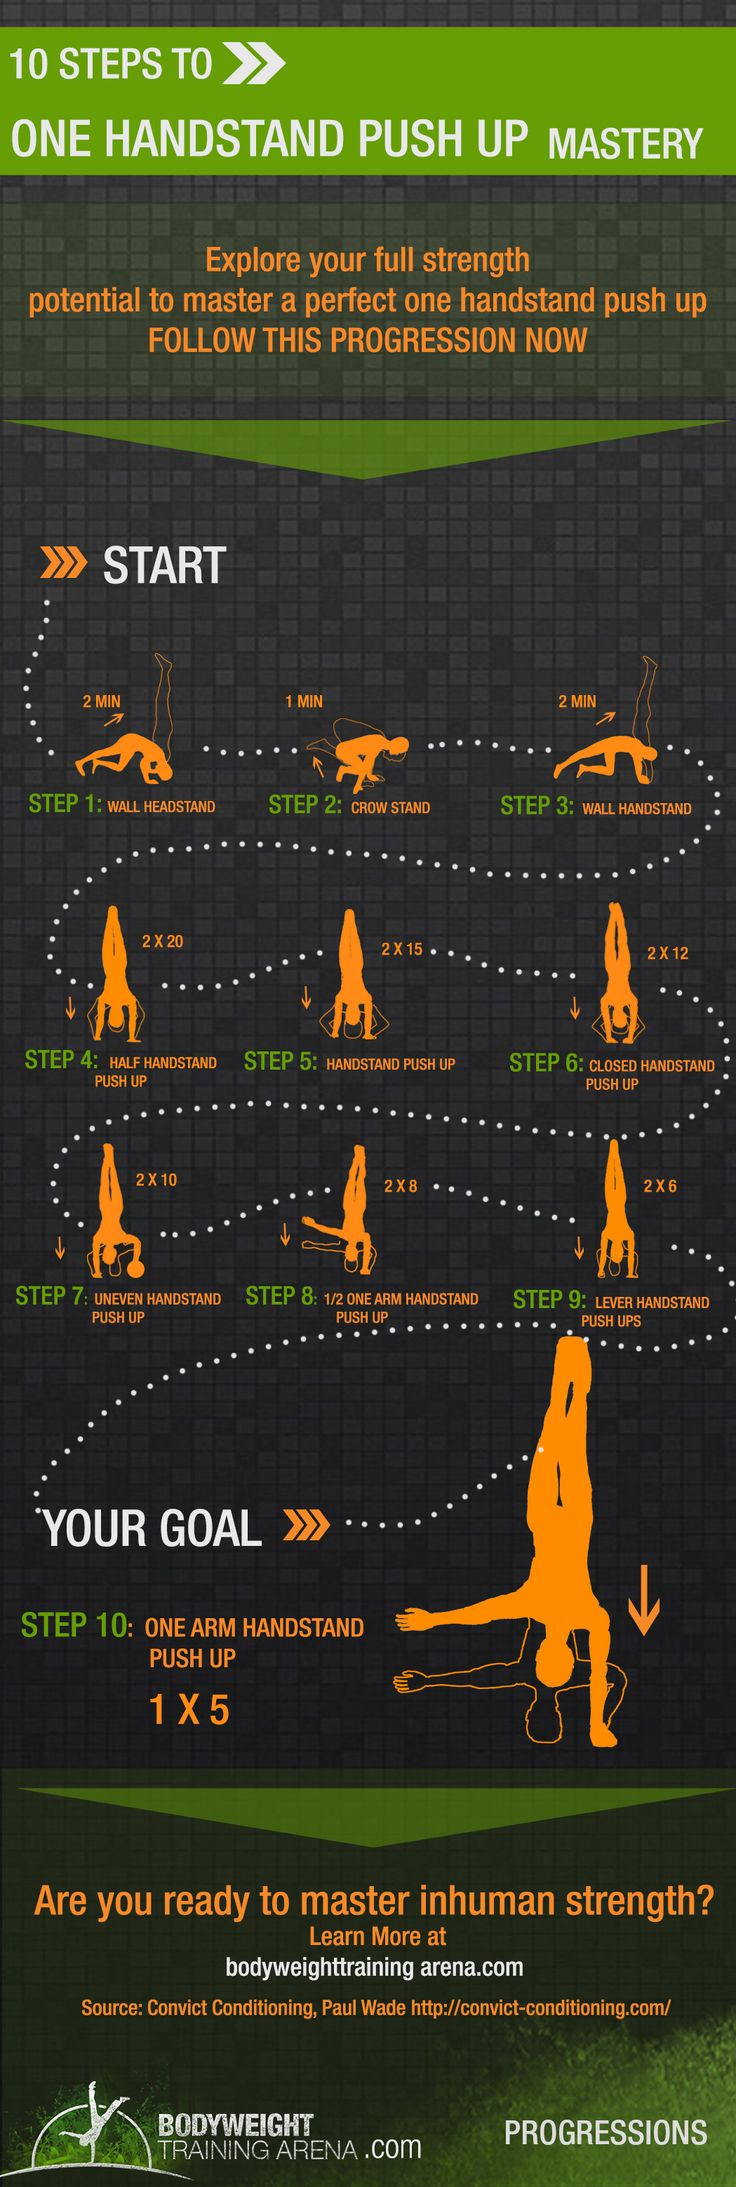 onehandhandstandpushup Convict Conditioning One HandStand Pushup Progression